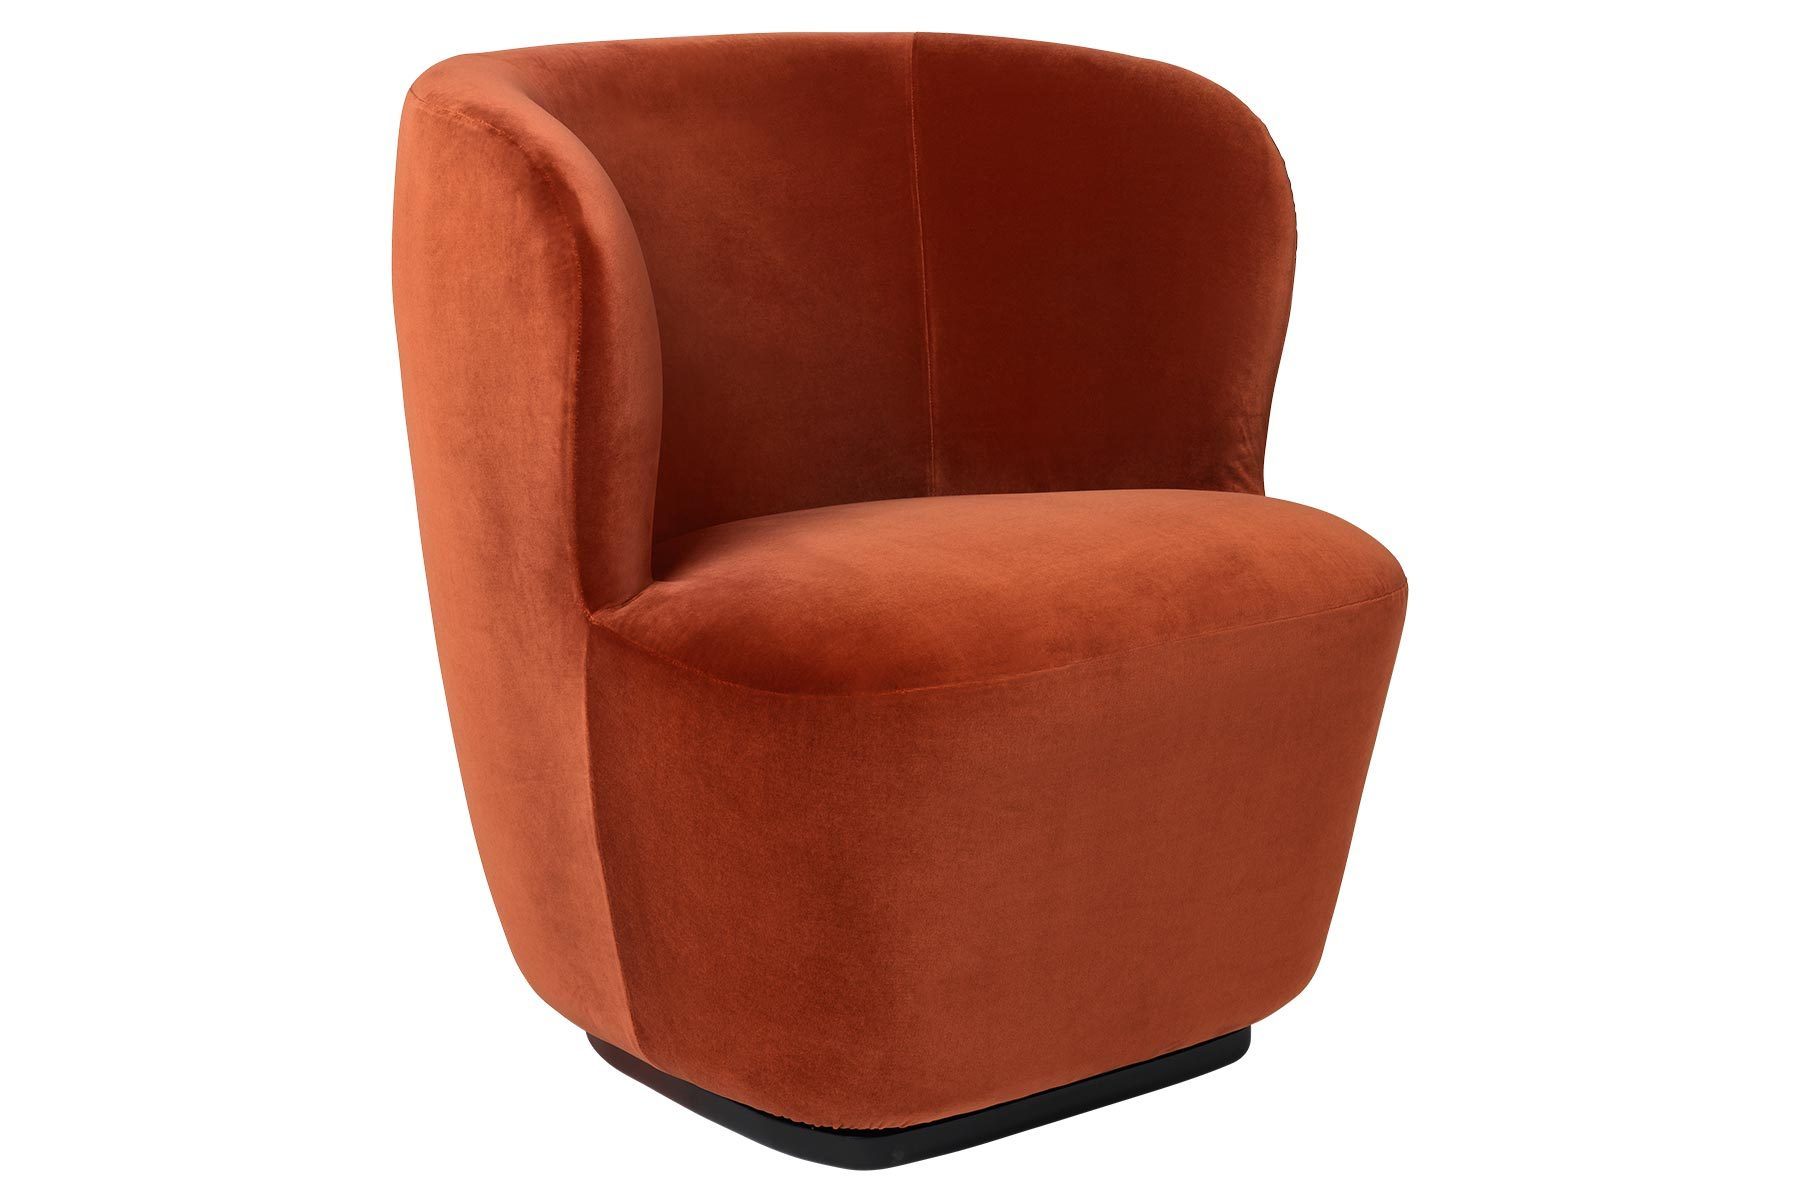 Stay Lounge Chair – Small – Swivel Base – Mid Century Mobler Intended For Swivel Sofa Chairs (View 6 of 15)